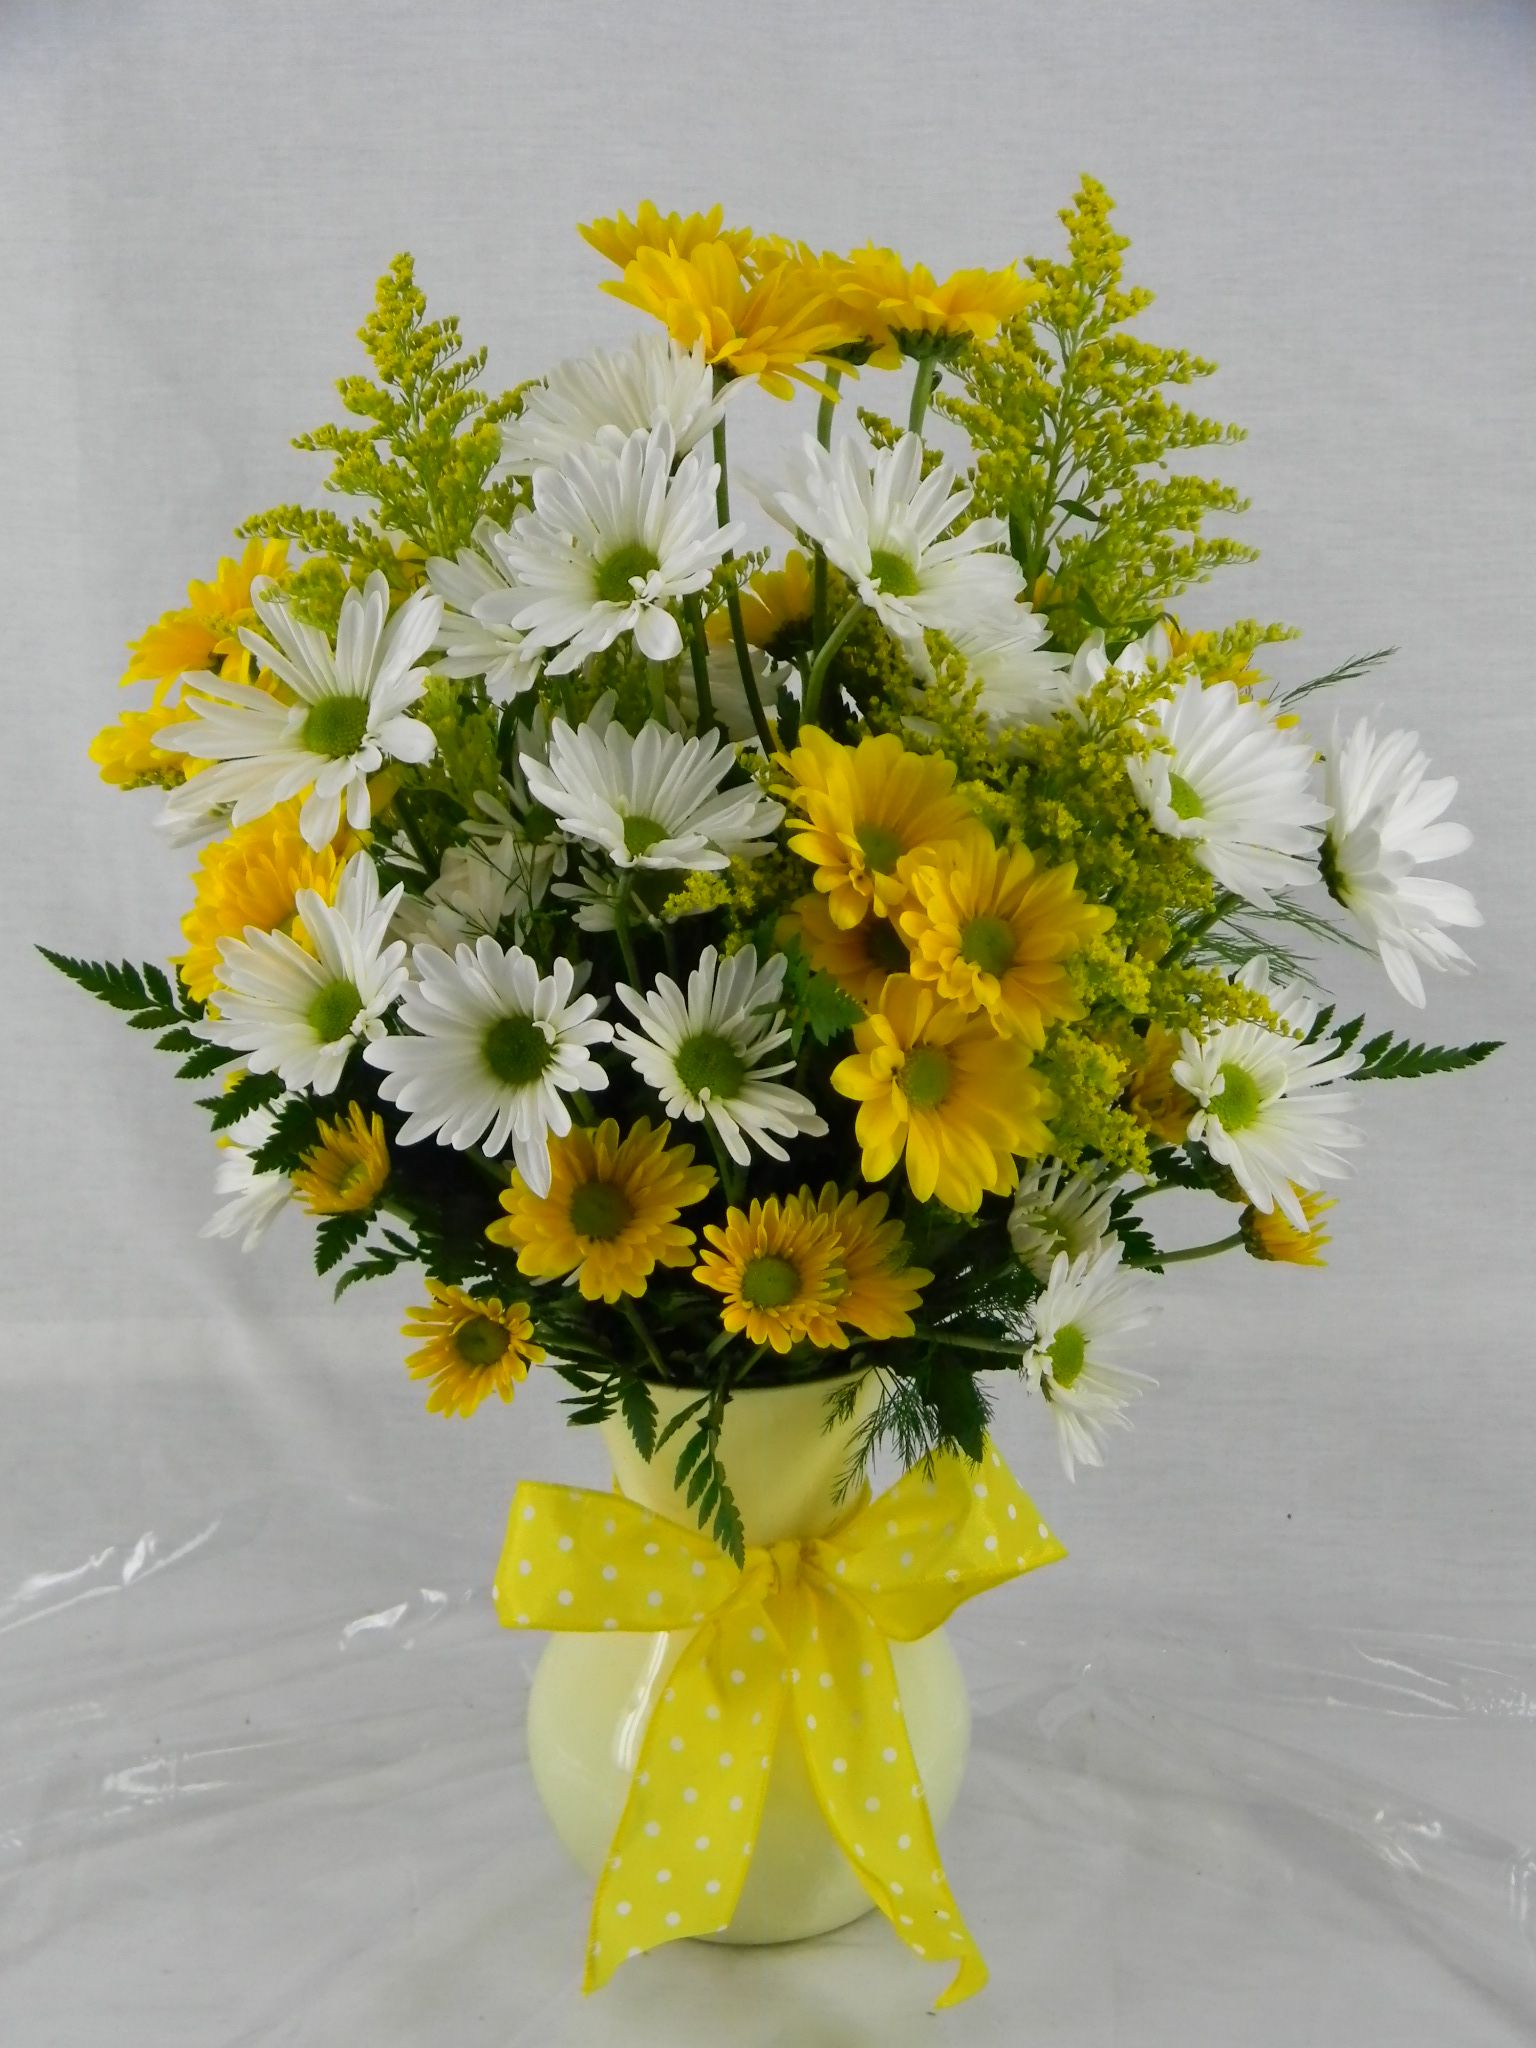 L 28 Crazy About Daisies Leith Flower Plant Gift Shop Plaistow